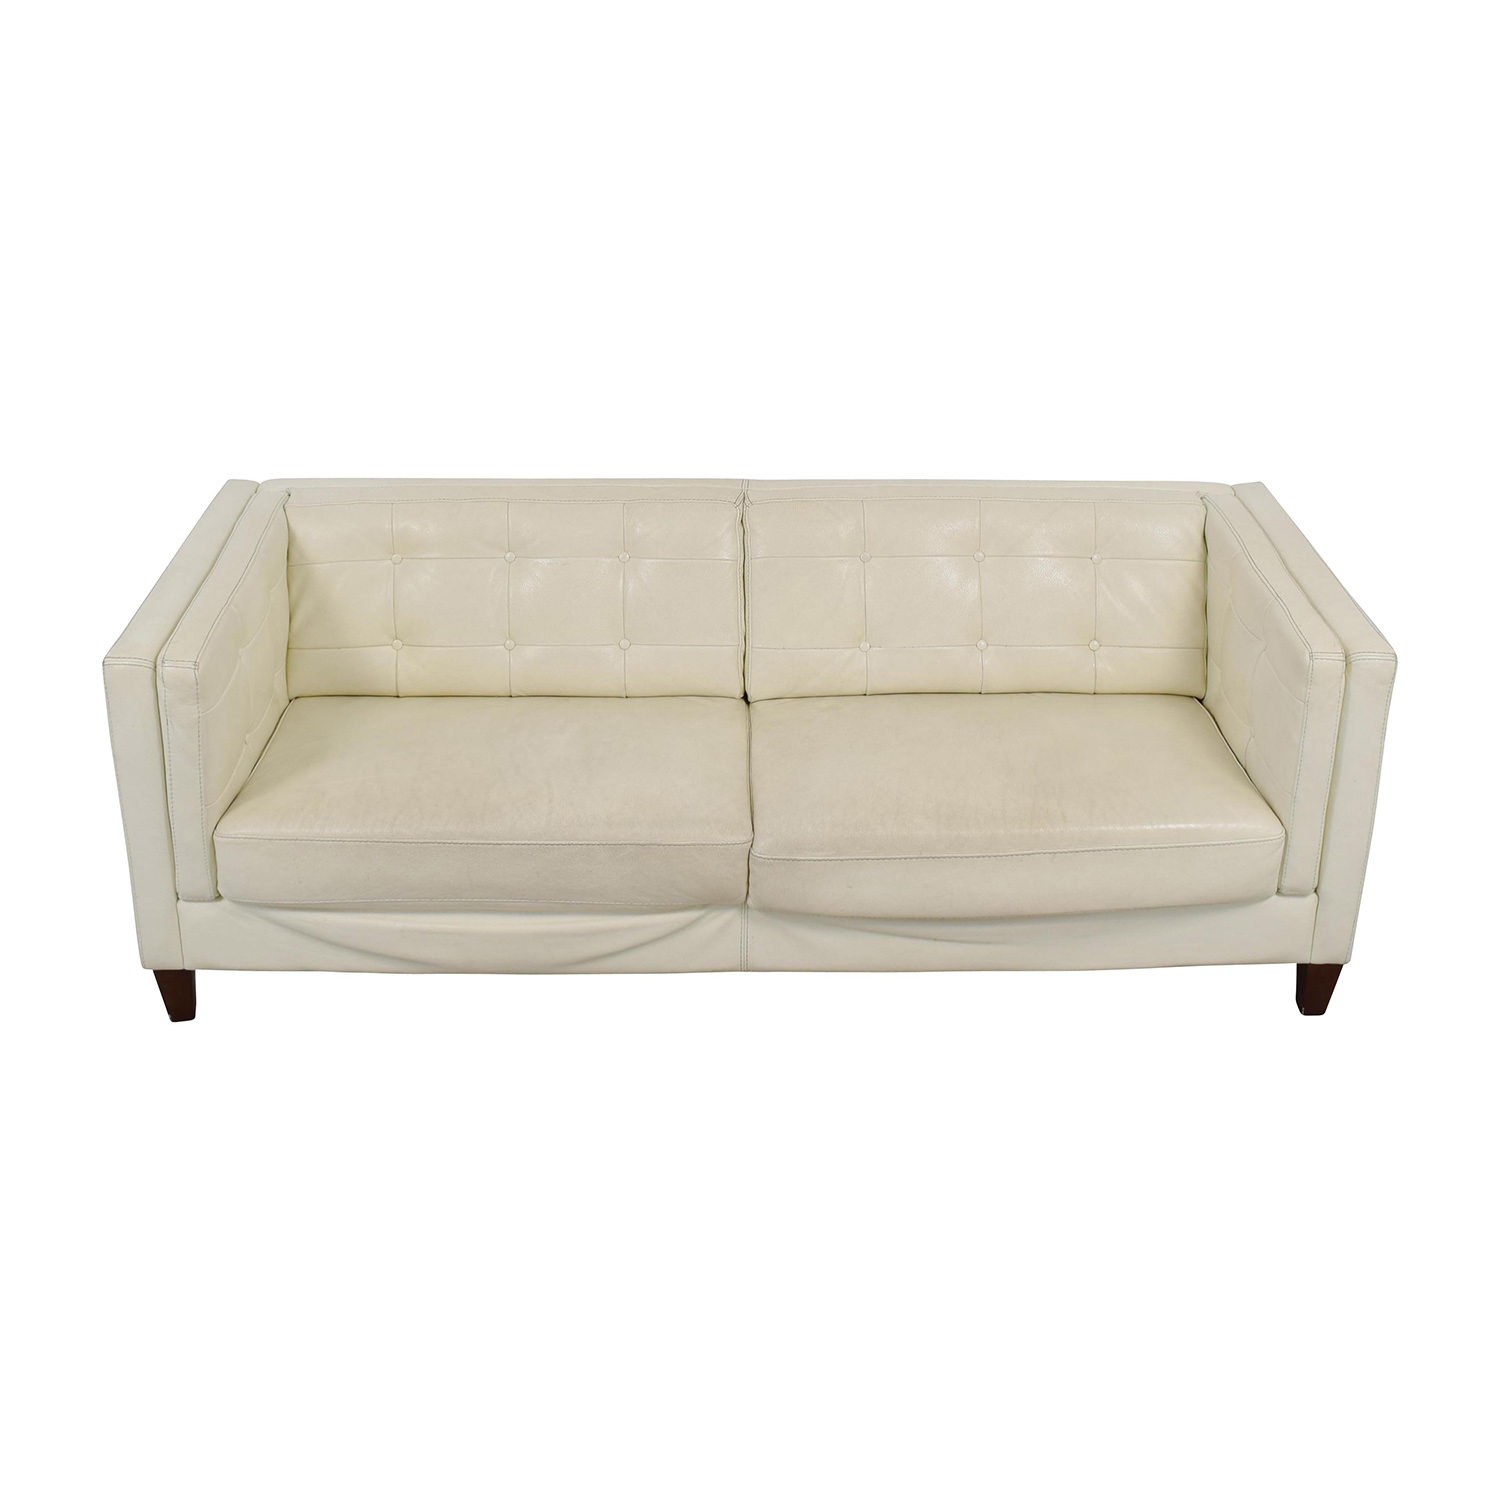 Macys Macys Tufted Pearl White Faux Leather Couch Classic Sofas